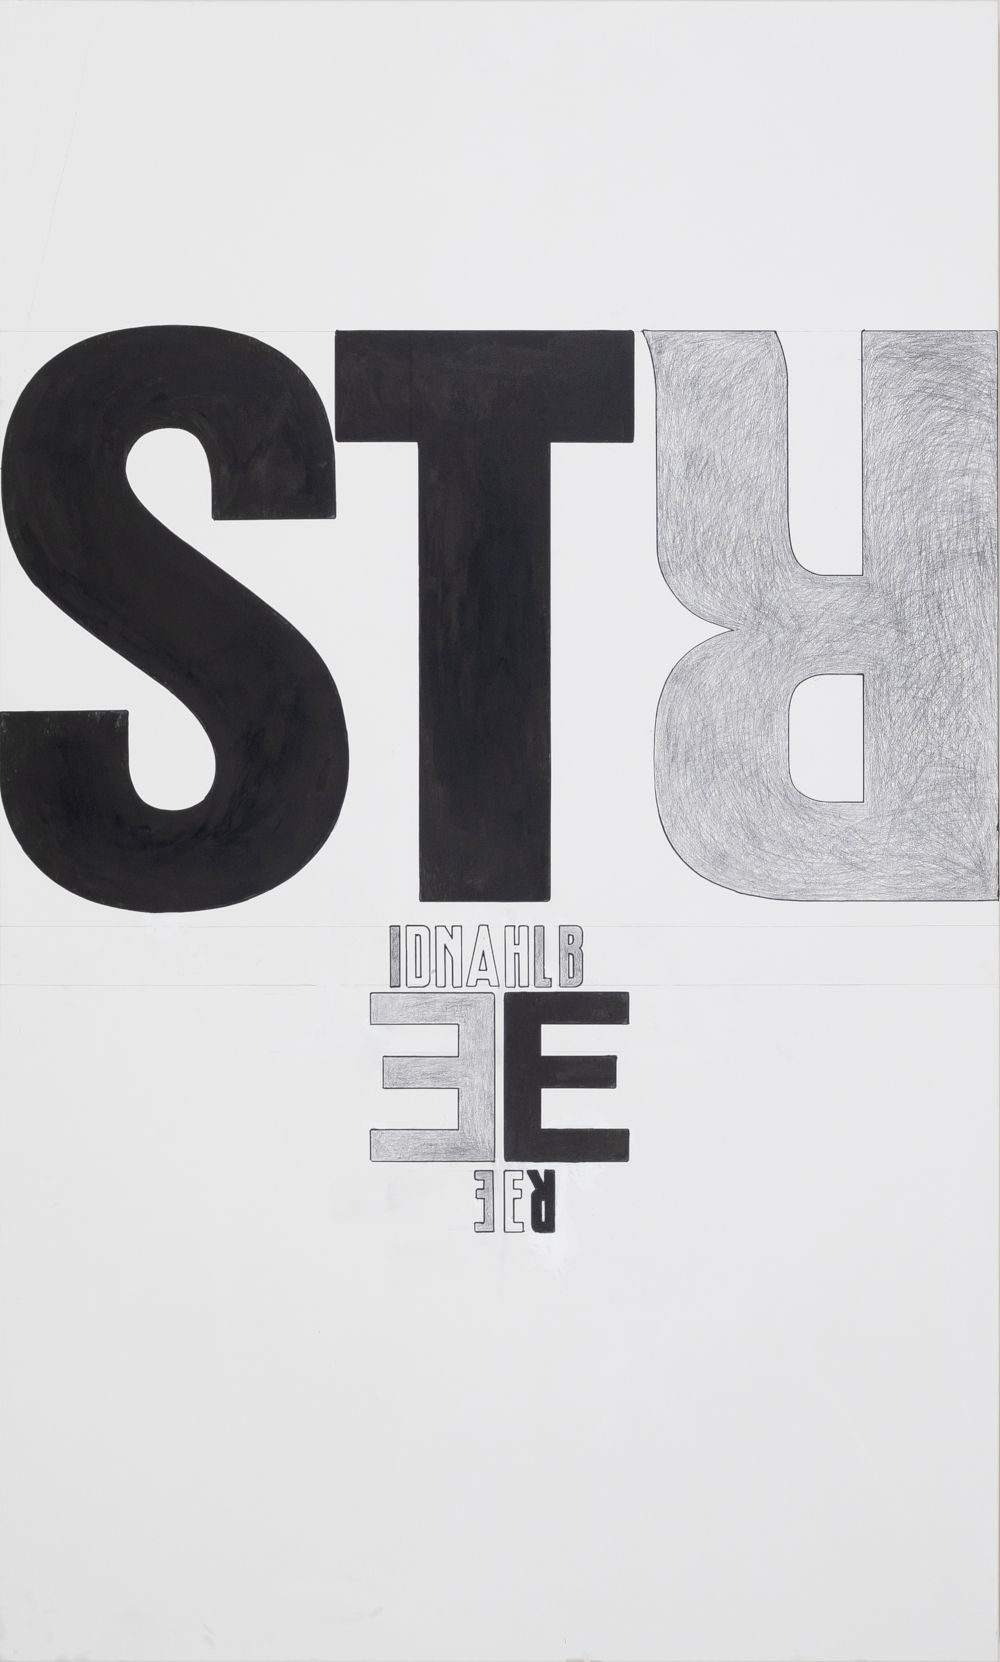 Franz Graf, Strahlen der Liebe, 2018 - 2019. Graphite and ink on wood 200 x 120 x 8 cm